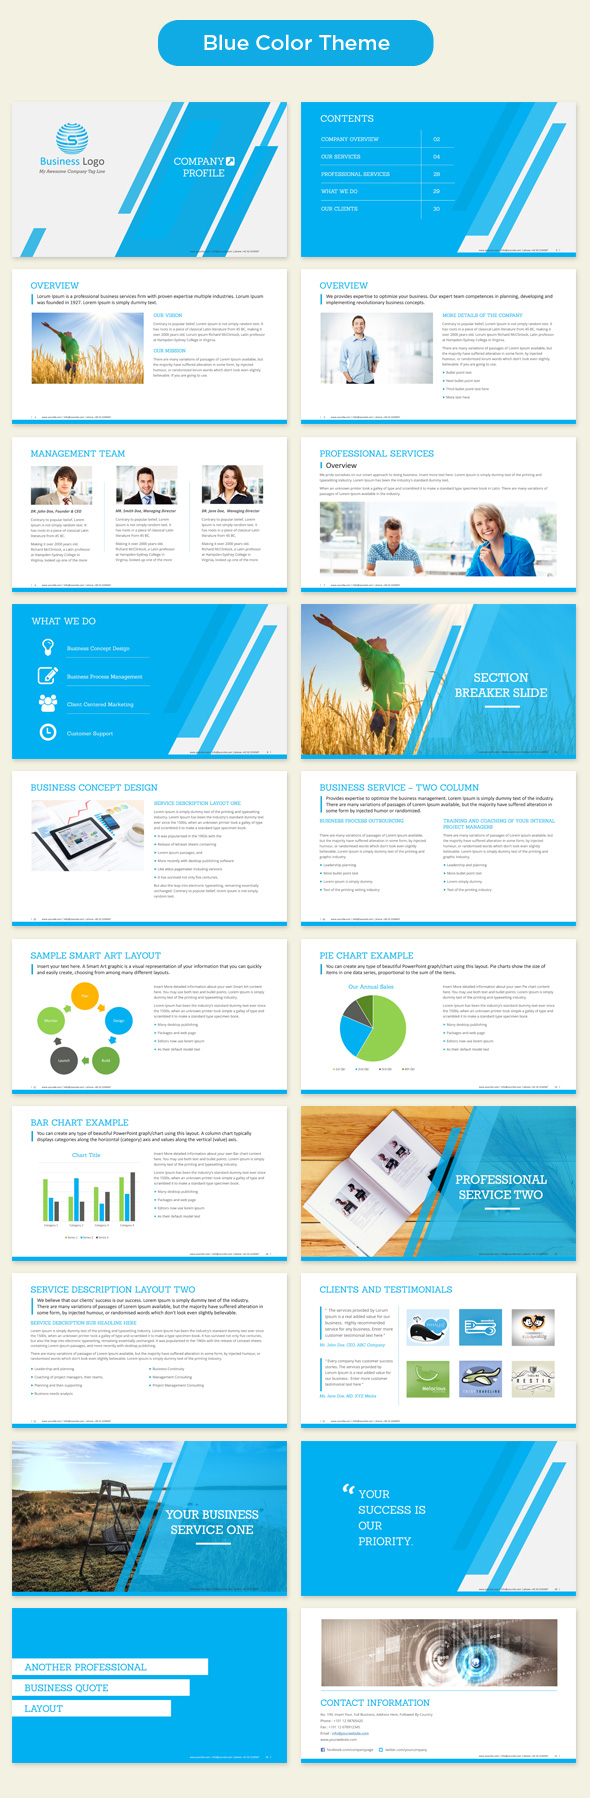 Company Profile PowerPoint Template Prime Template – Templates for Company Profile